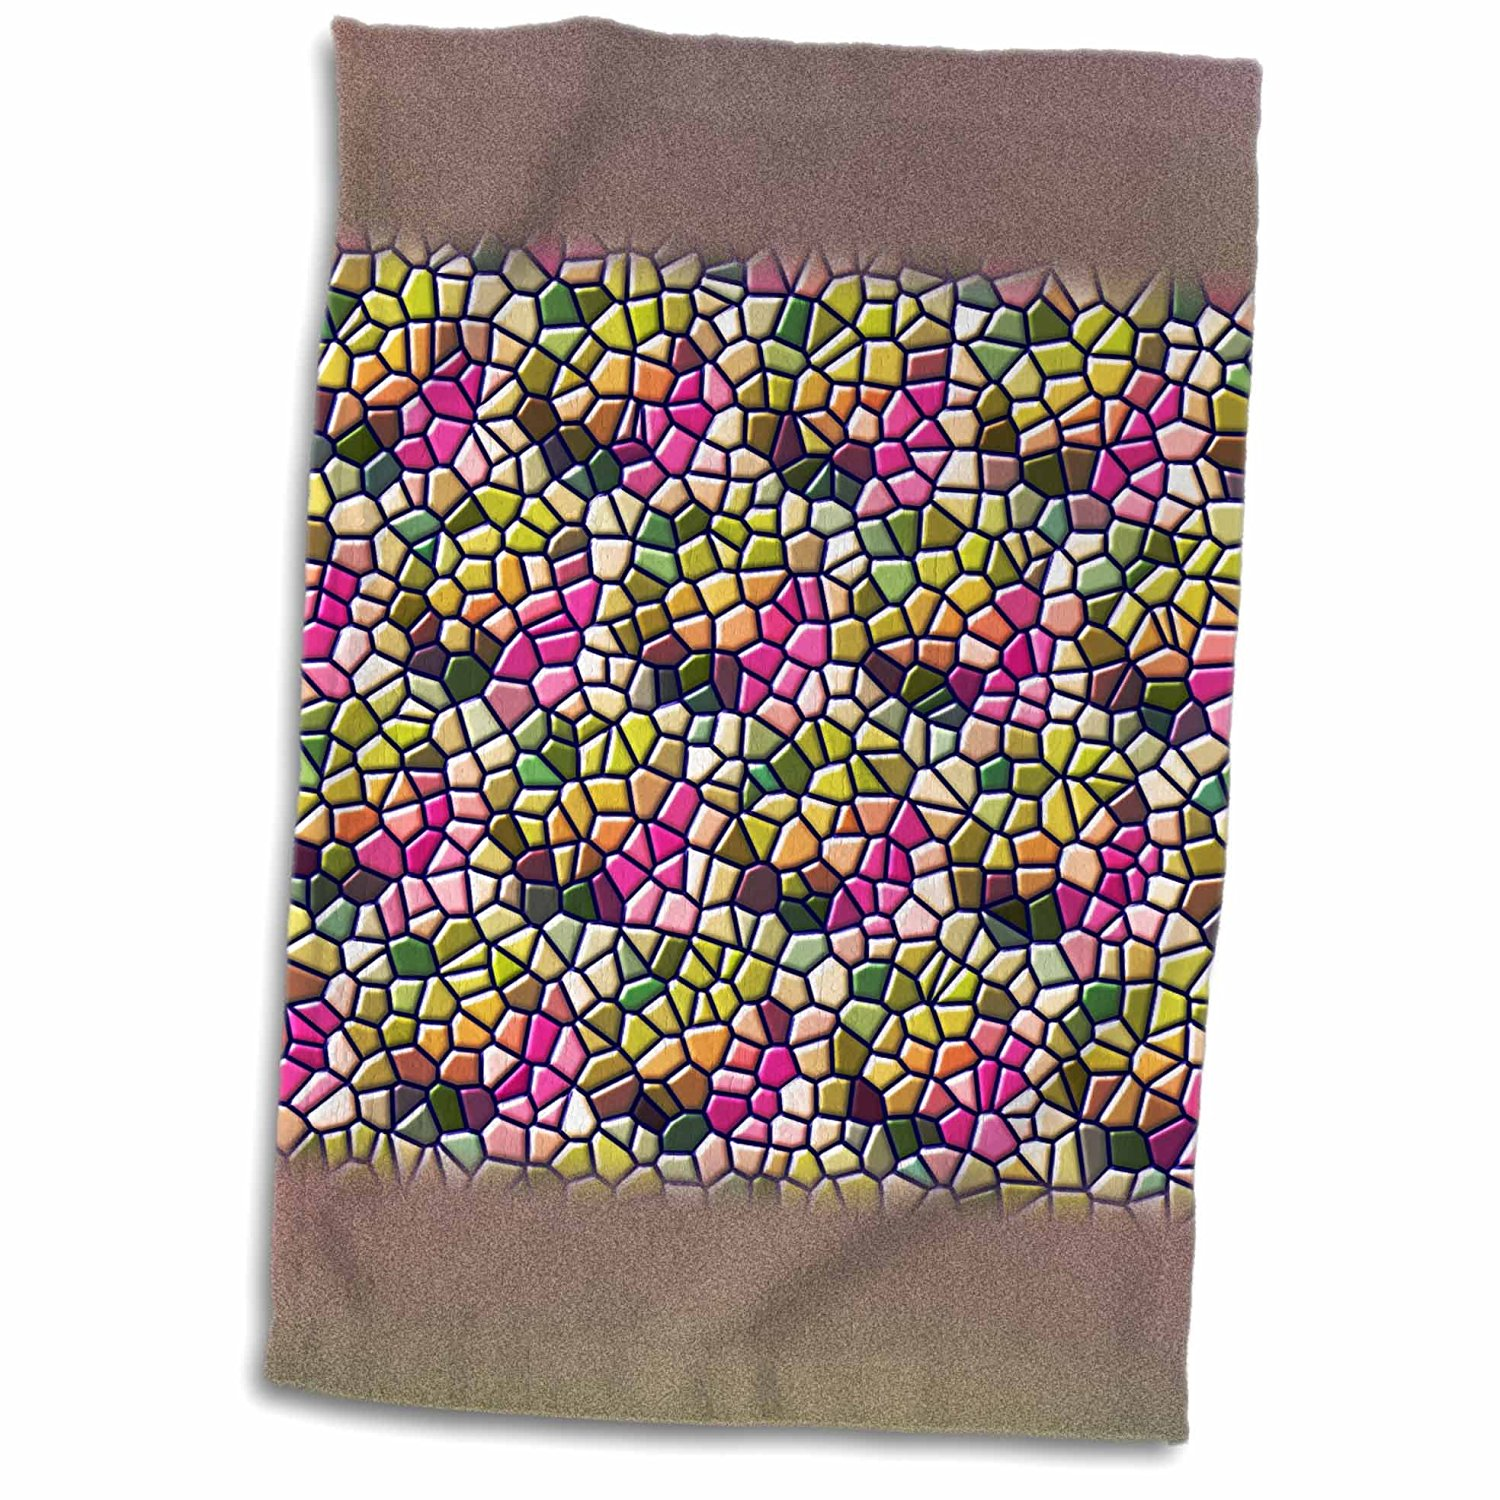 3dRose Russ Billington Designs - Abstract Mosaic Design in Soft Pink and Green - 12x18 Towel (twl_238888_1)